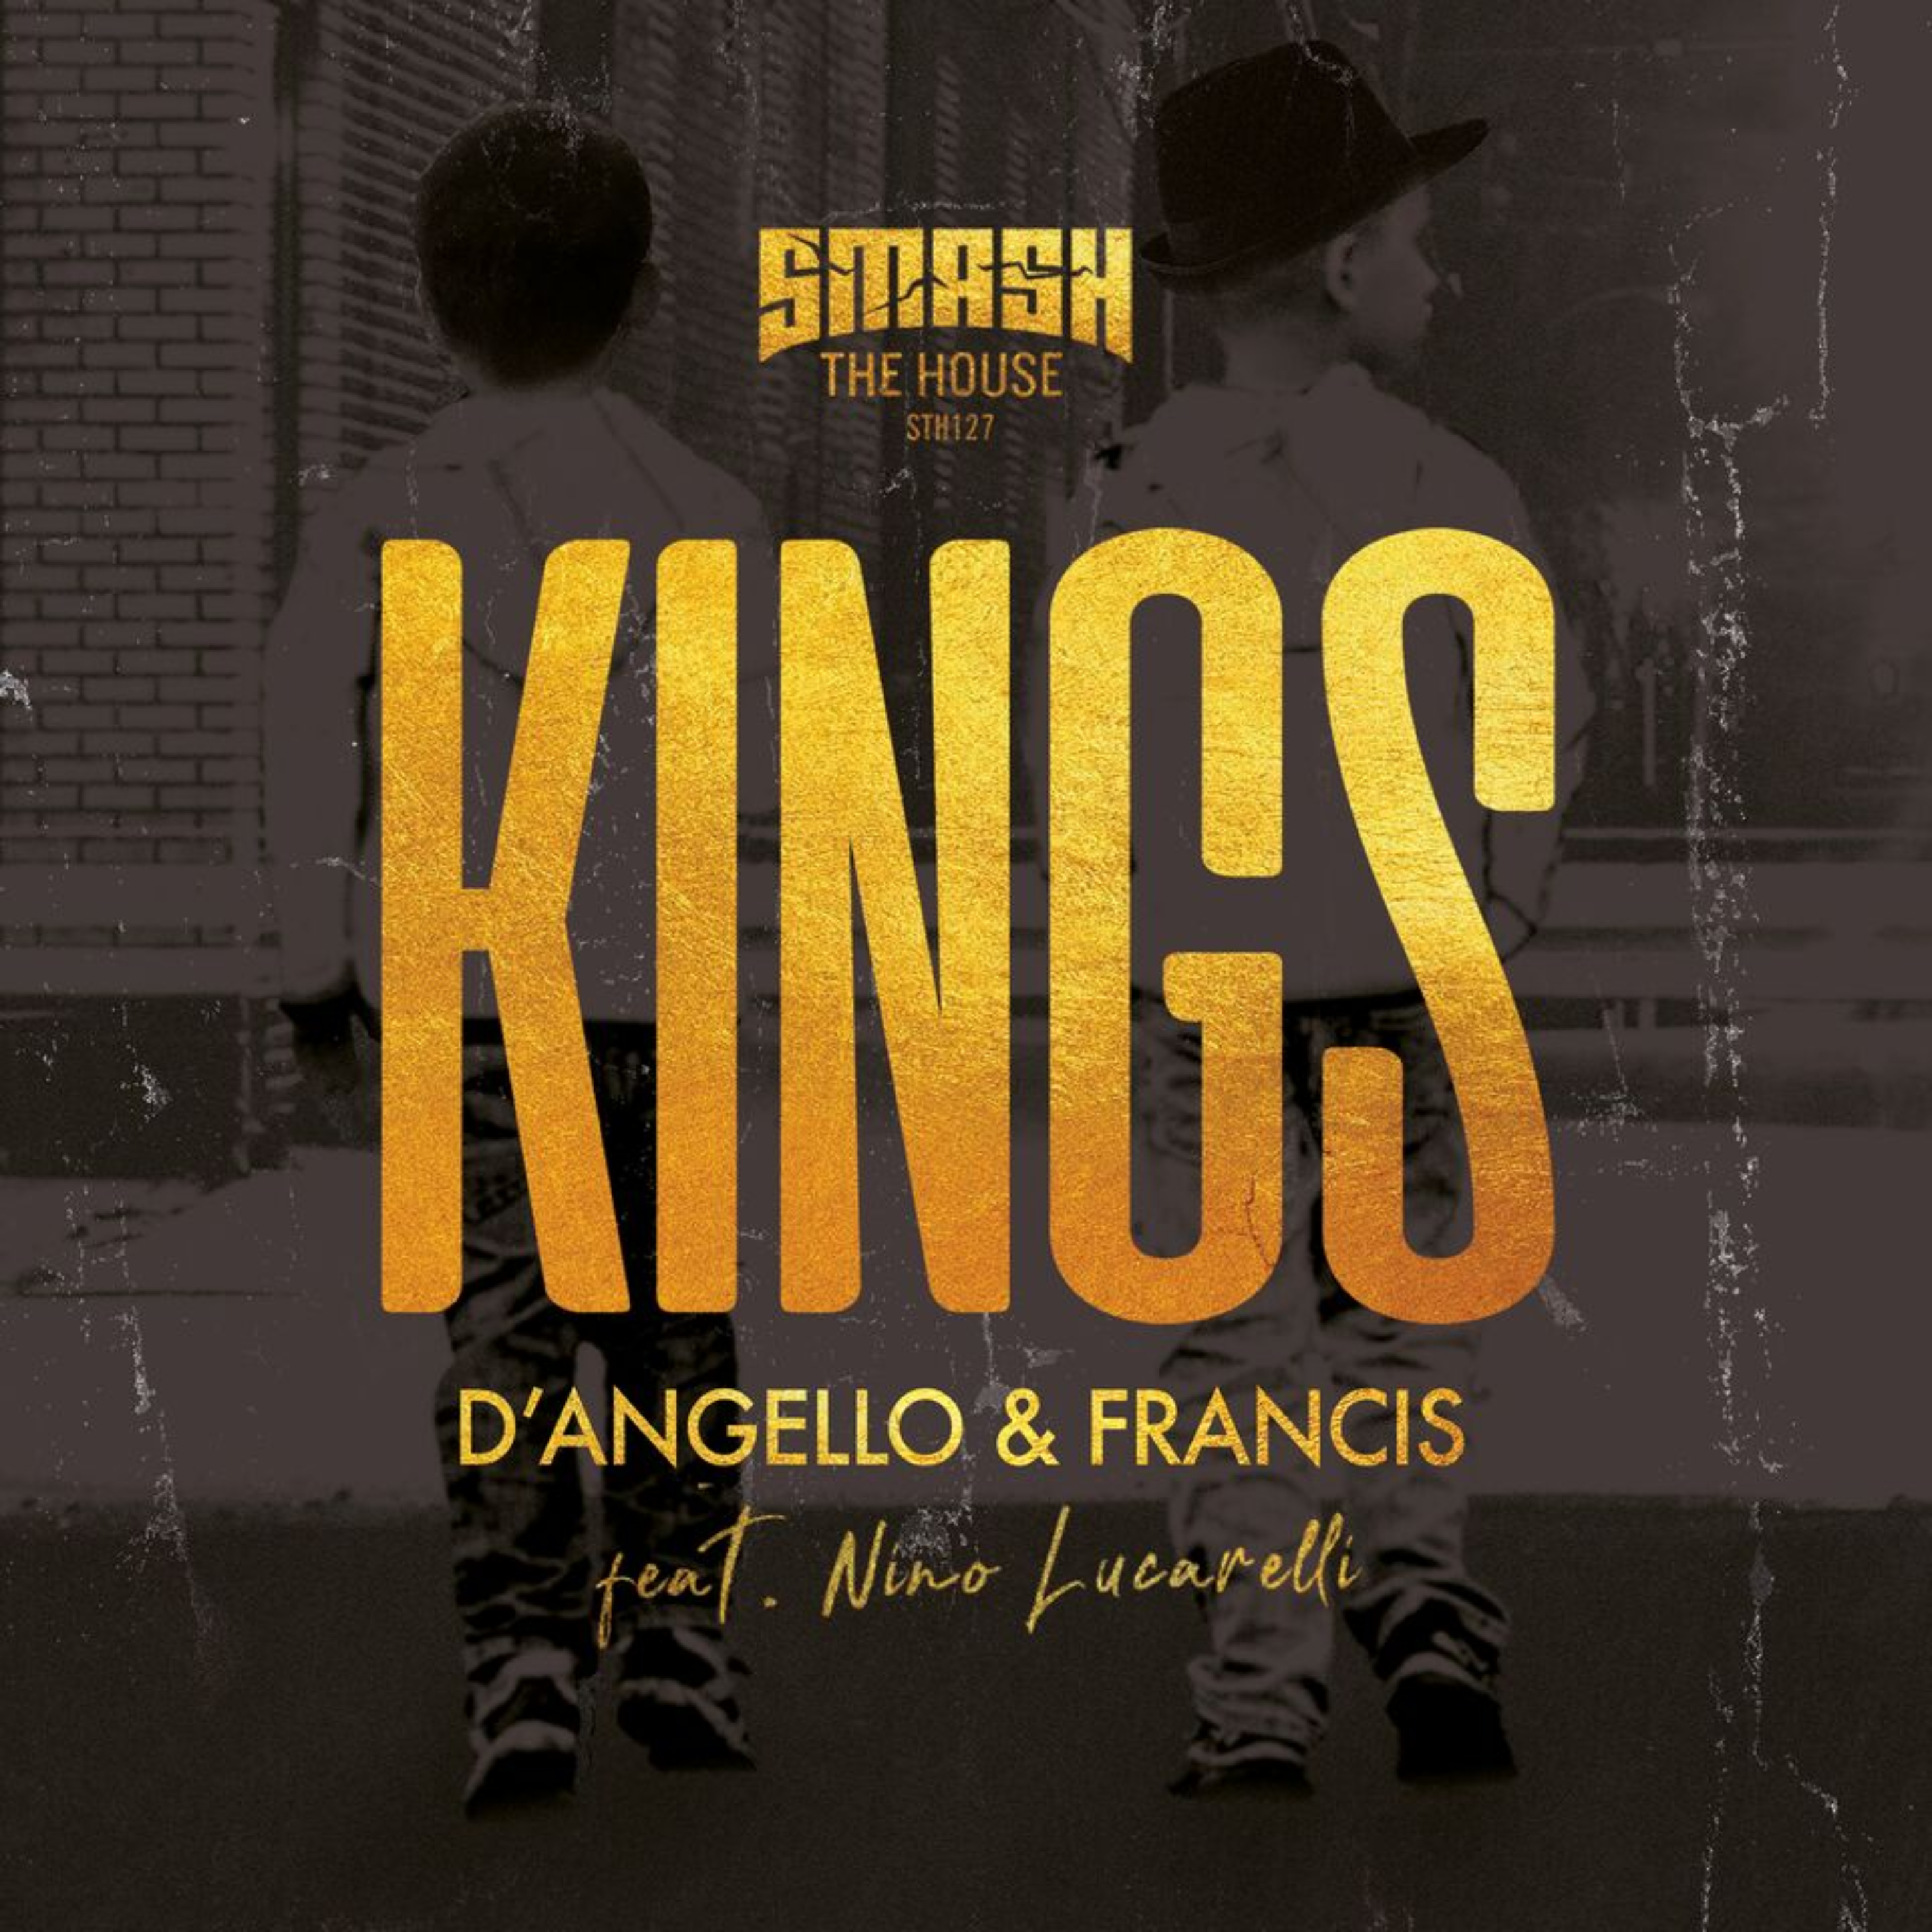 D'Angello & Francis